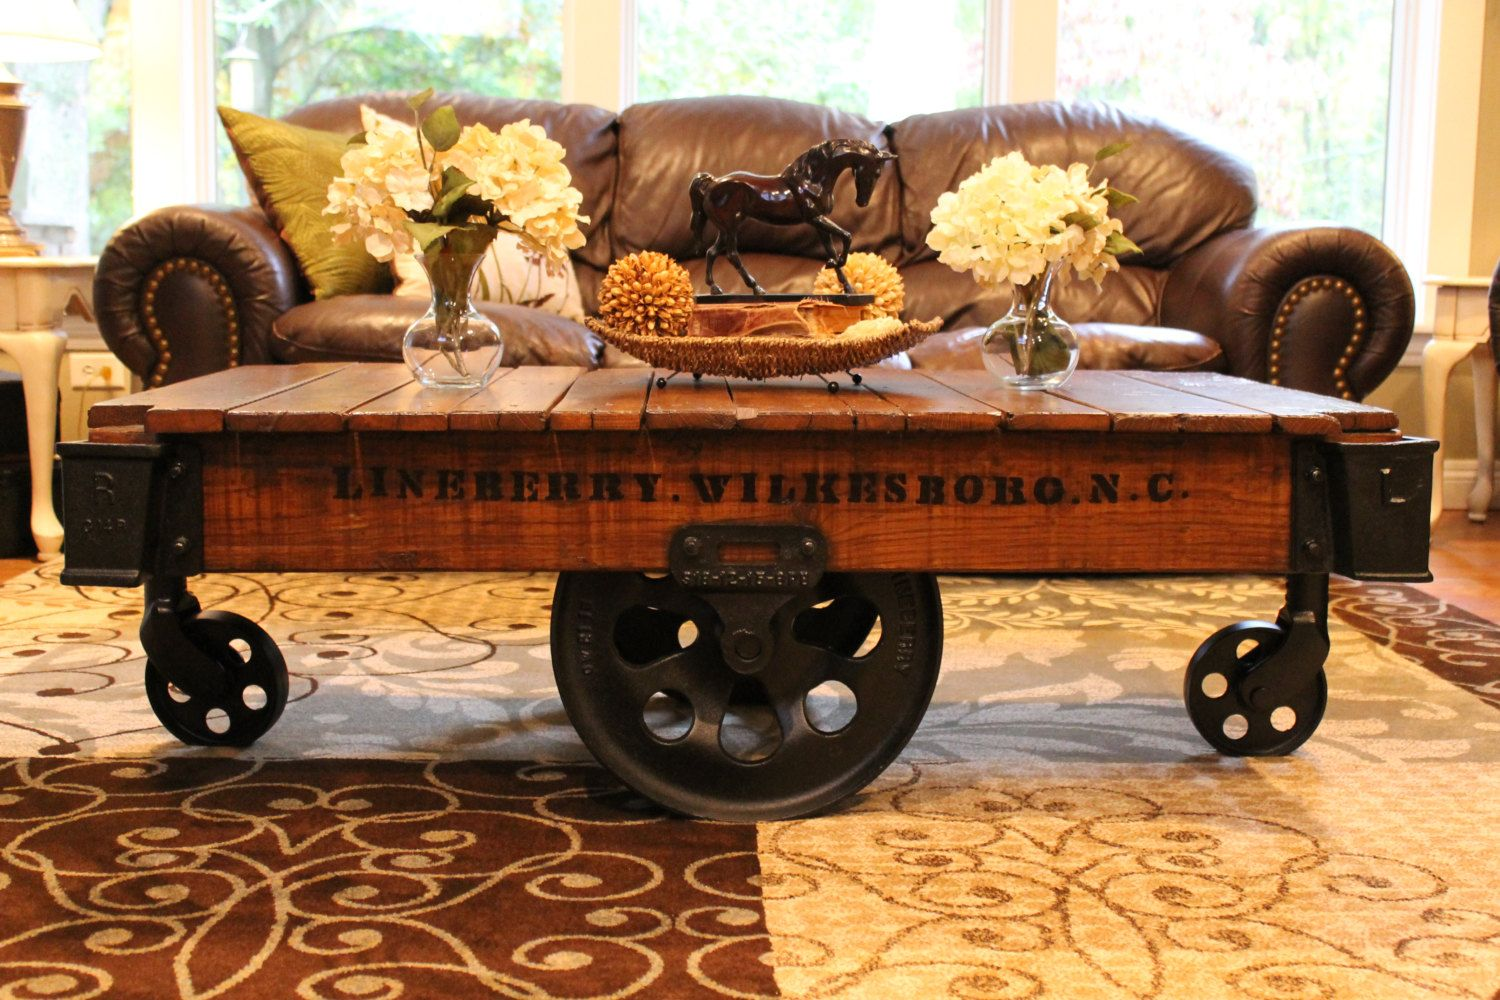 Vintage Restored Lineberry Factory Cart Coffee Table By Keeriah, $850.00